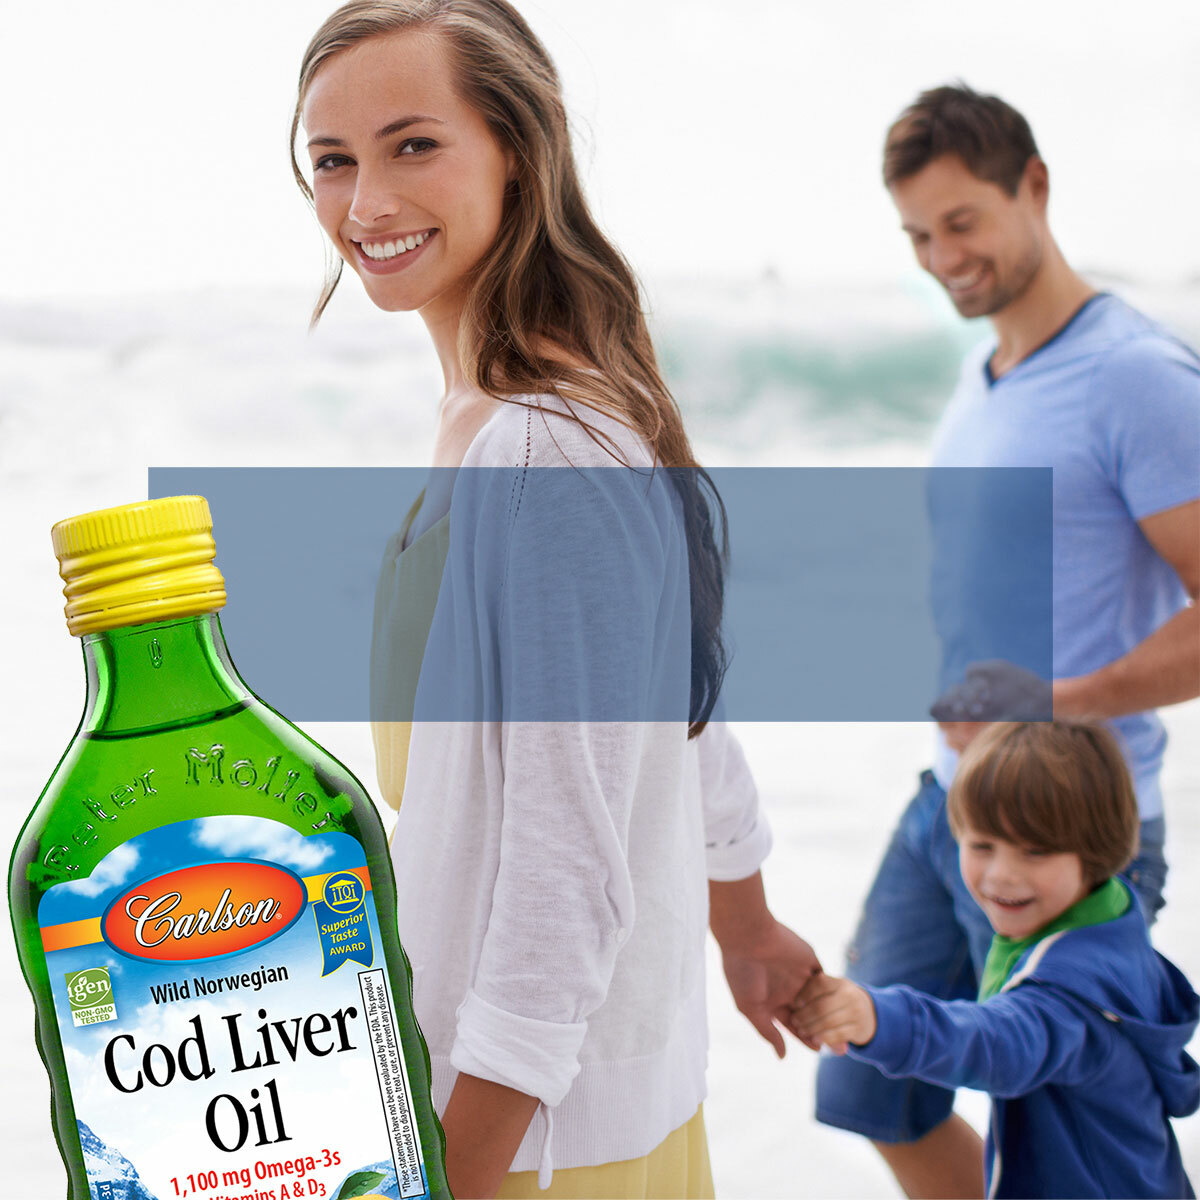 #1 Cod Liver Oil in the US*